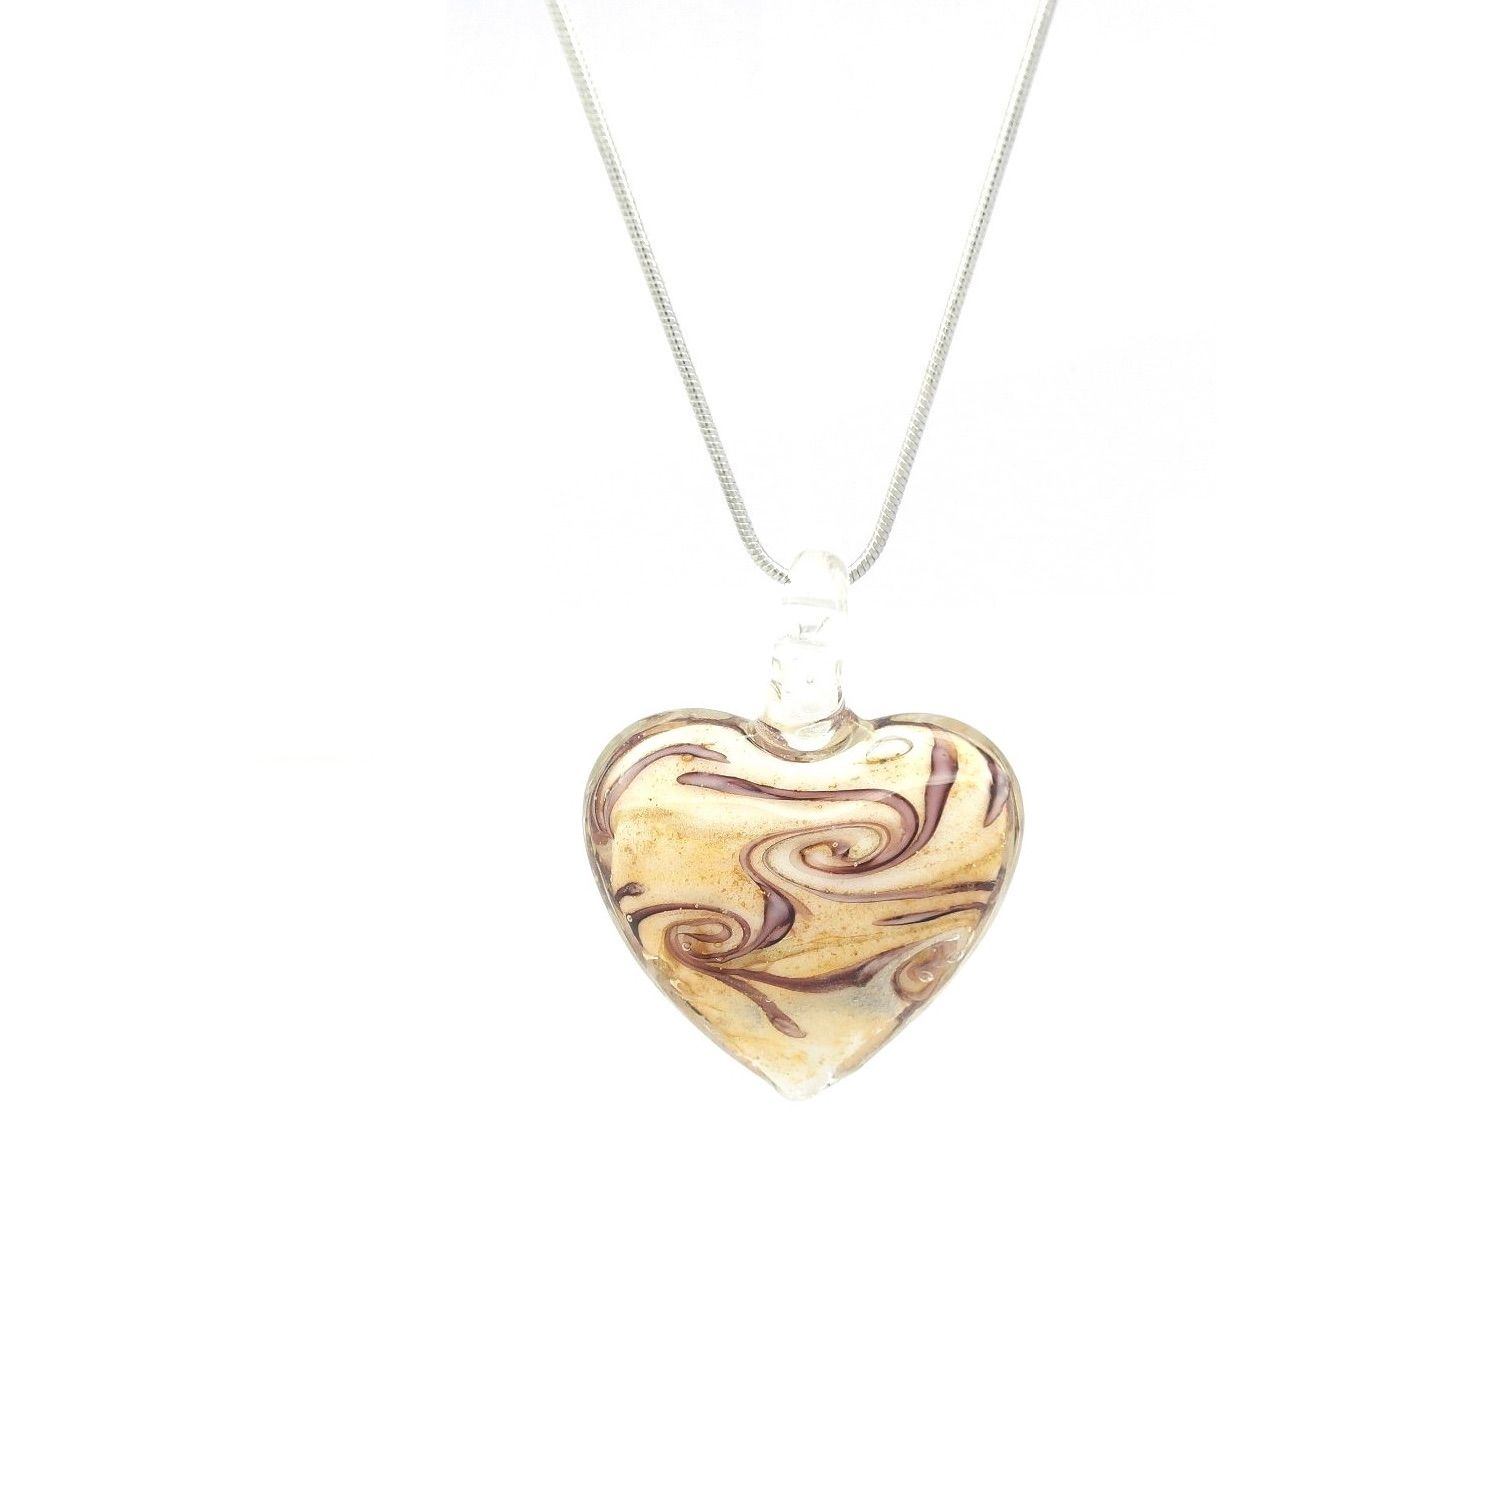 plated jenny pdp shaped silver johnlewis online heart rhodium jools buyjools zirconia modern rsp at by brown pendant cubic main